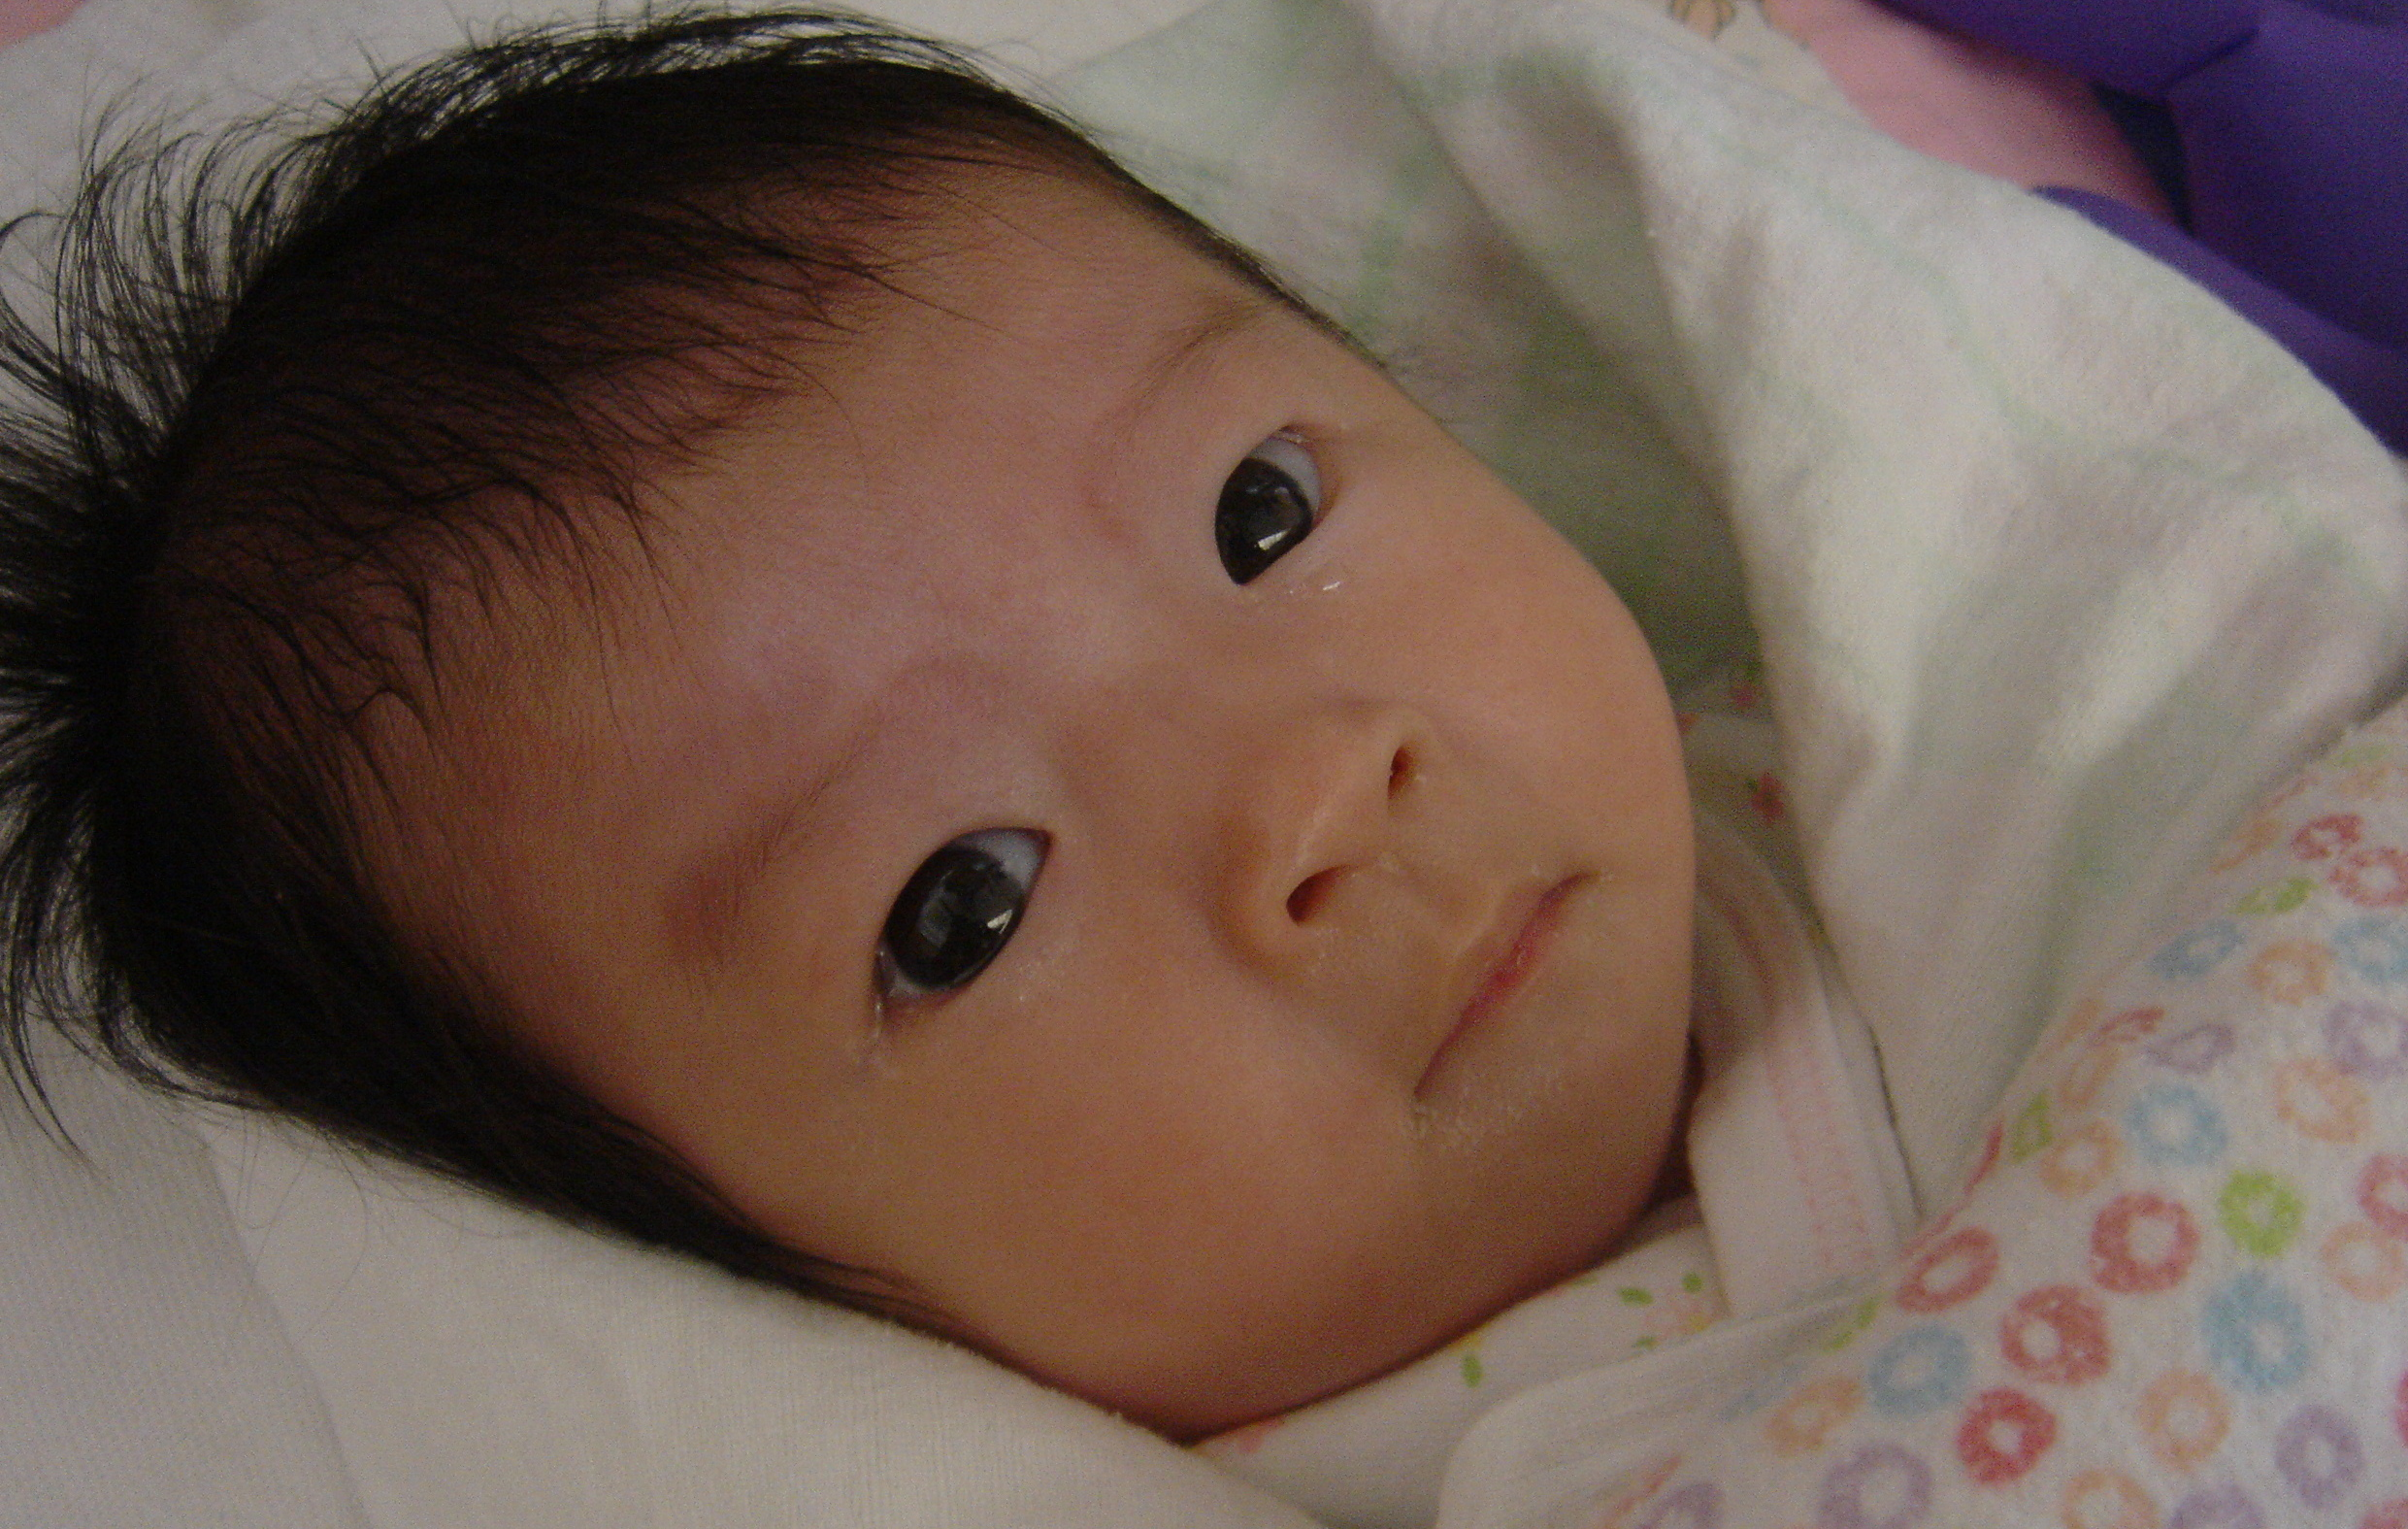 Thanks to the extraordinary care provided by the doctors and nurses in the NICU, Harumi was breathing completely on her own at 3 weeks of age.